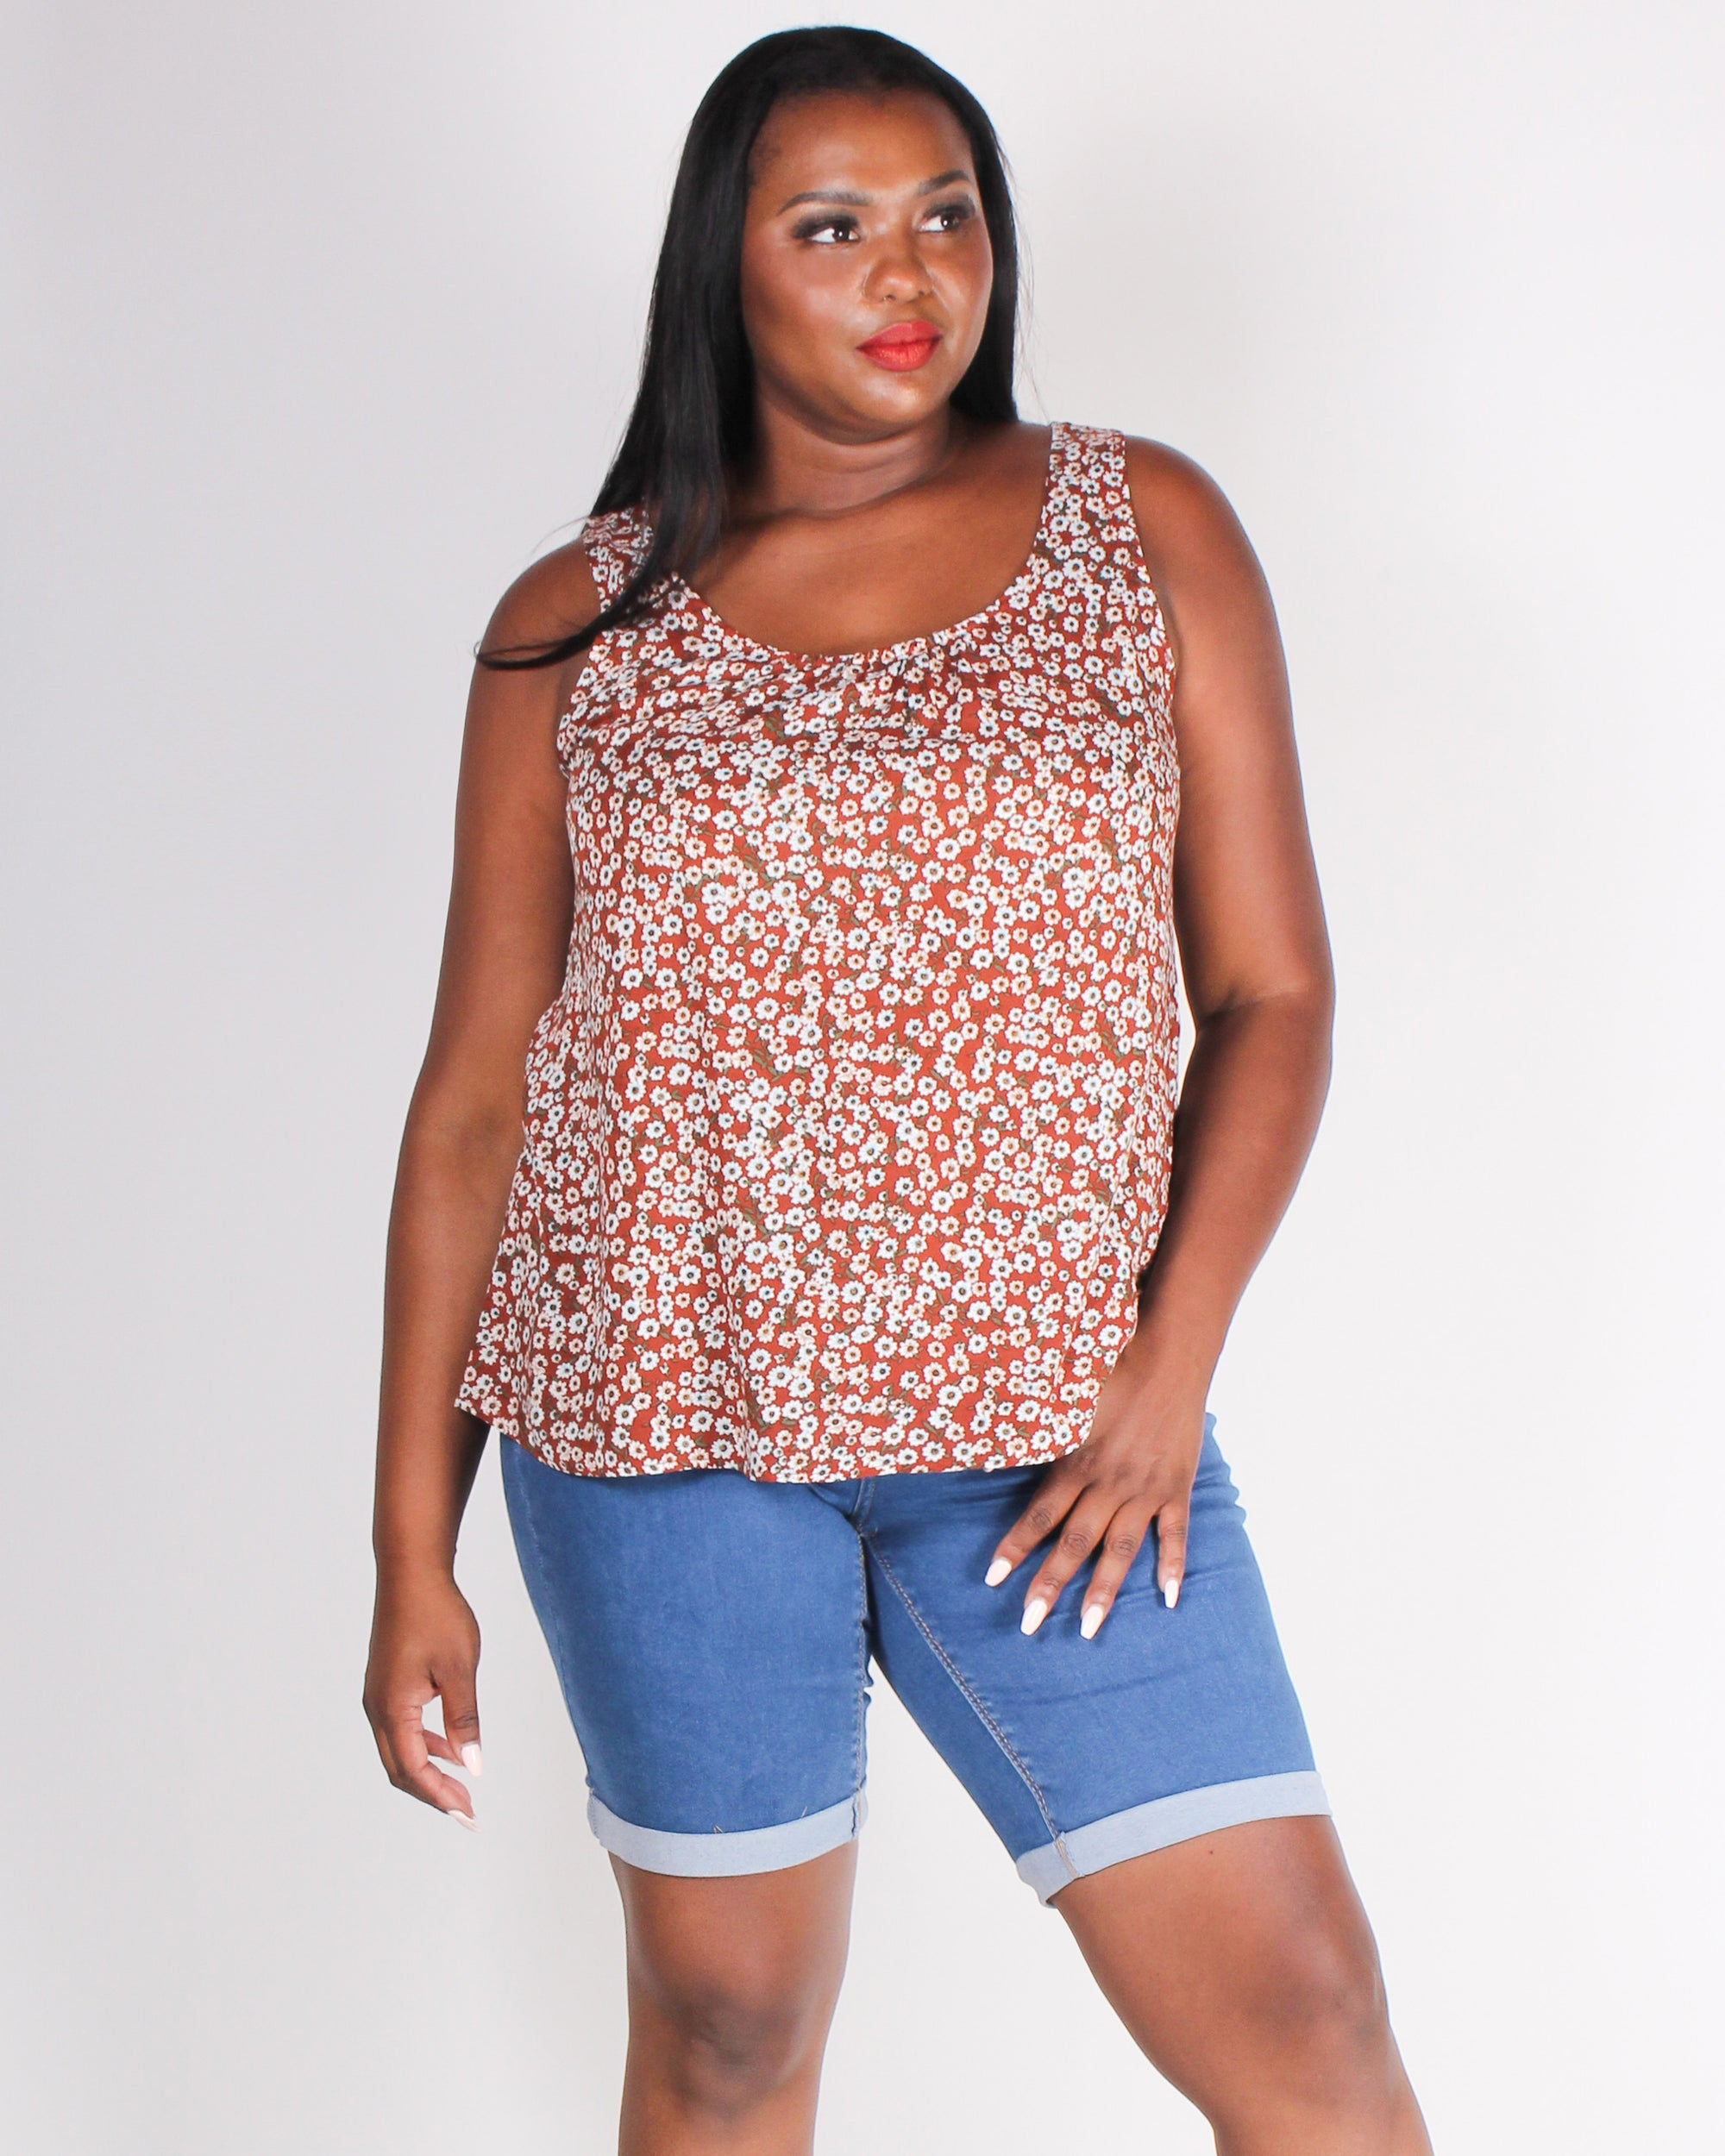 Fashion Q Shop Q Baby, You Got it Floral Plus Tank Blouse (Rust) IT4080